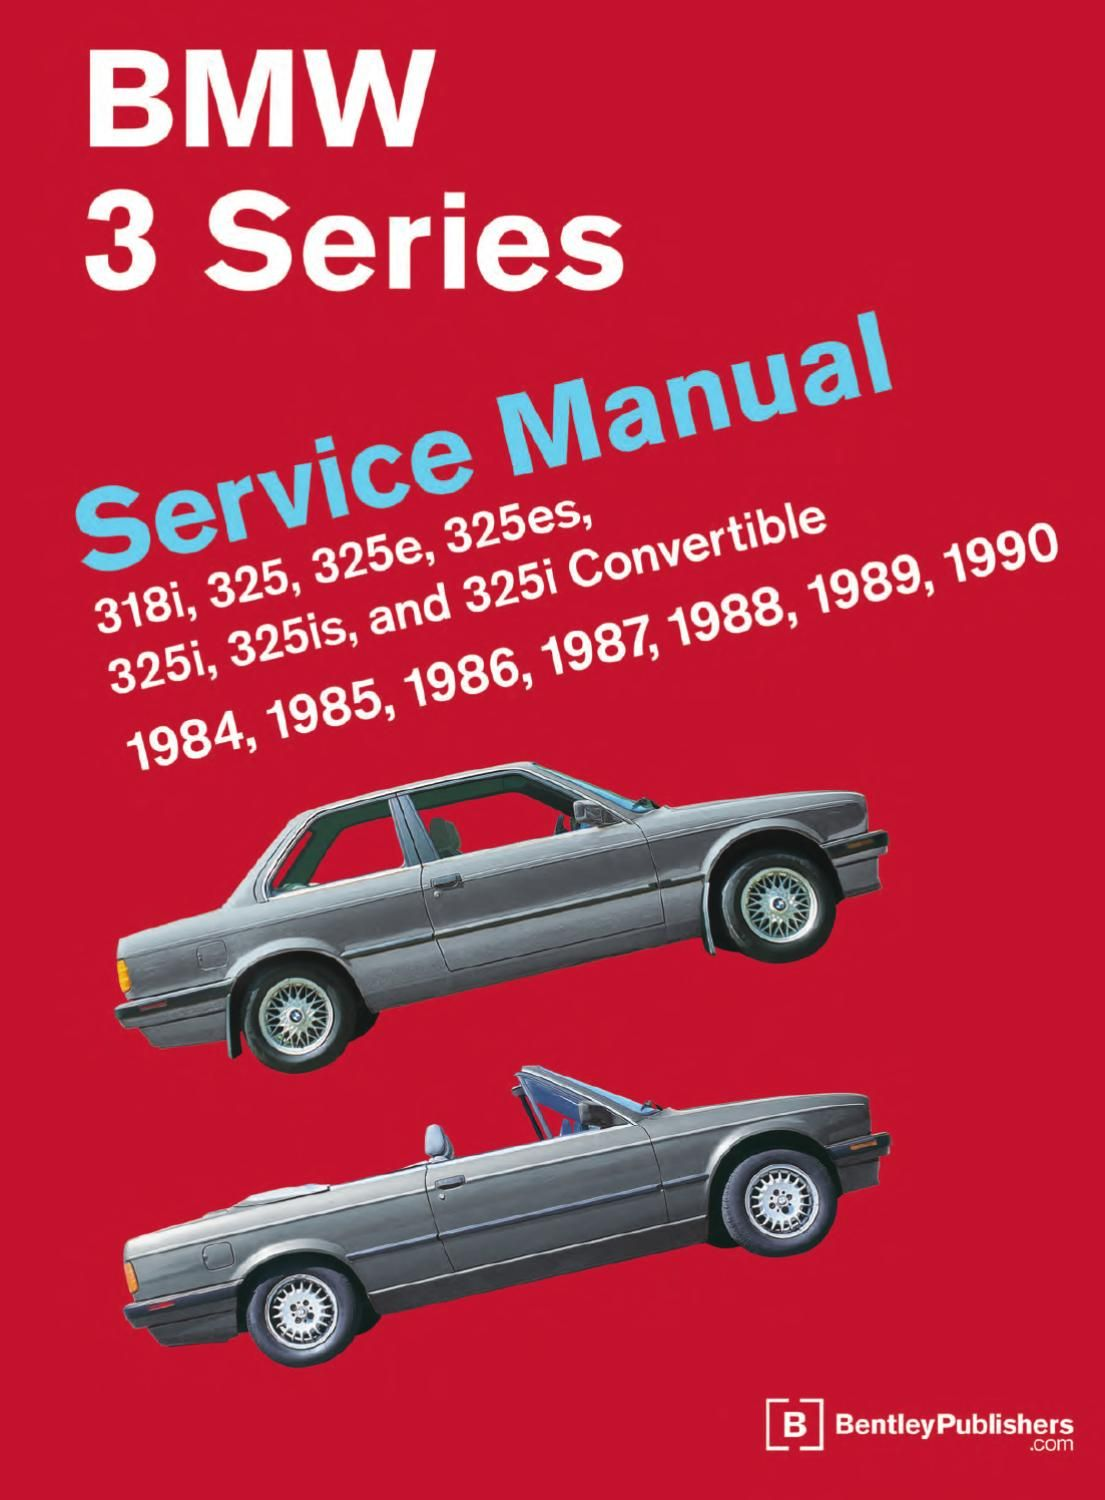 Bentley bmw bmw e30 and e30 the bmw repair manual 3 series is a comprehensive single source of service information and specifications for bmw 3 series cars from whether youre a publicscrutiny Choice Image